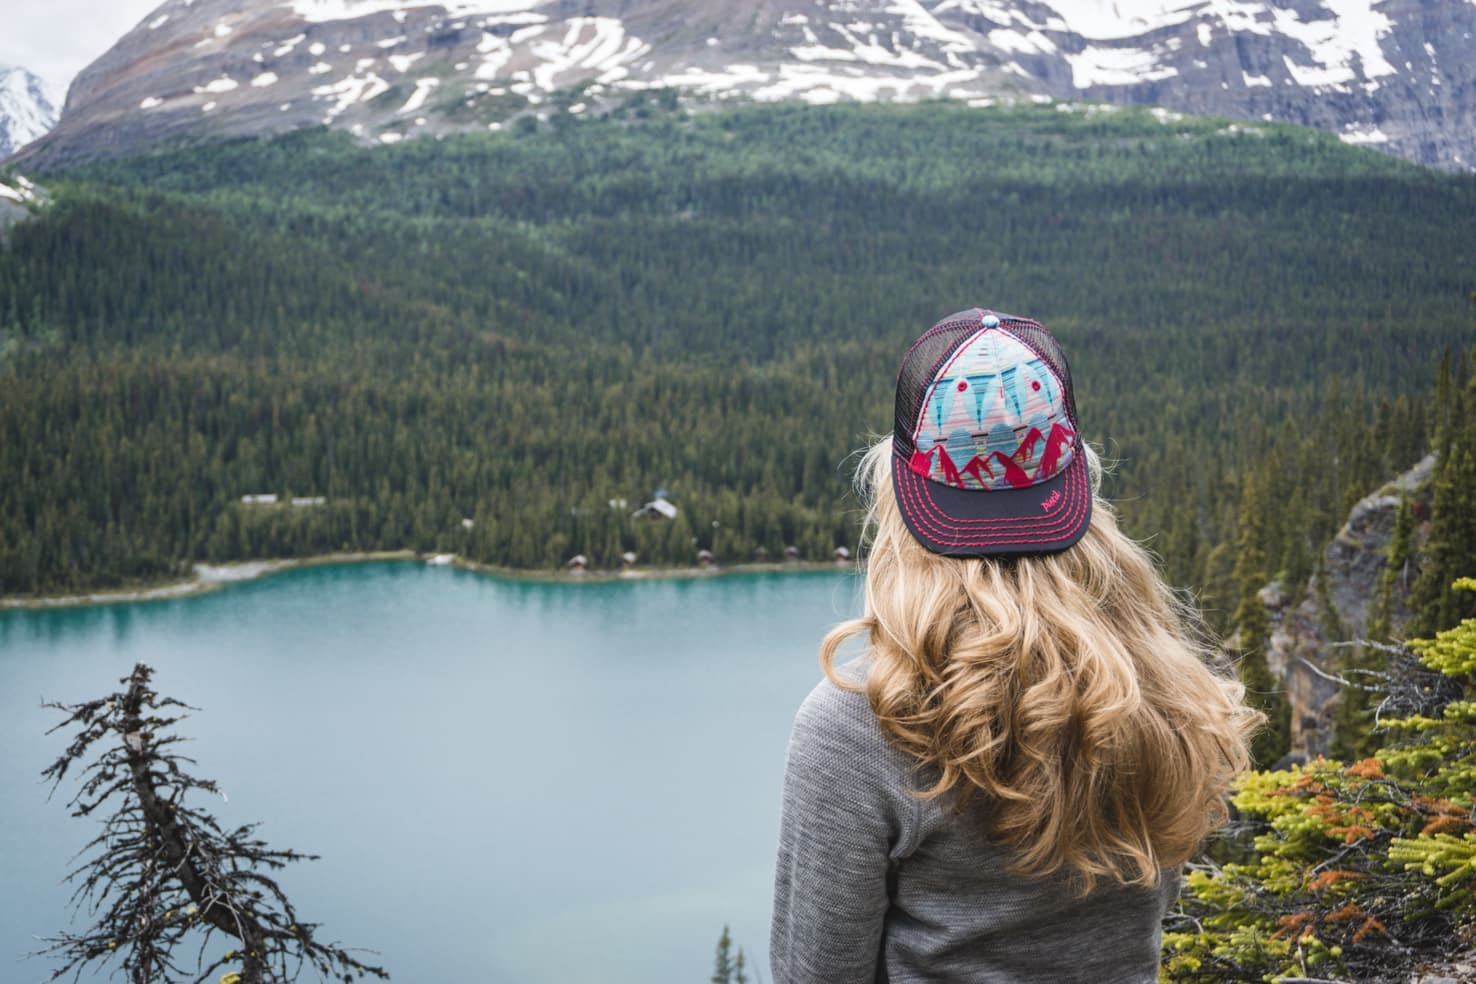 Hiking packing list for summer in the mountains - Lake O'Hara ,Yoho National Park, Canada-3